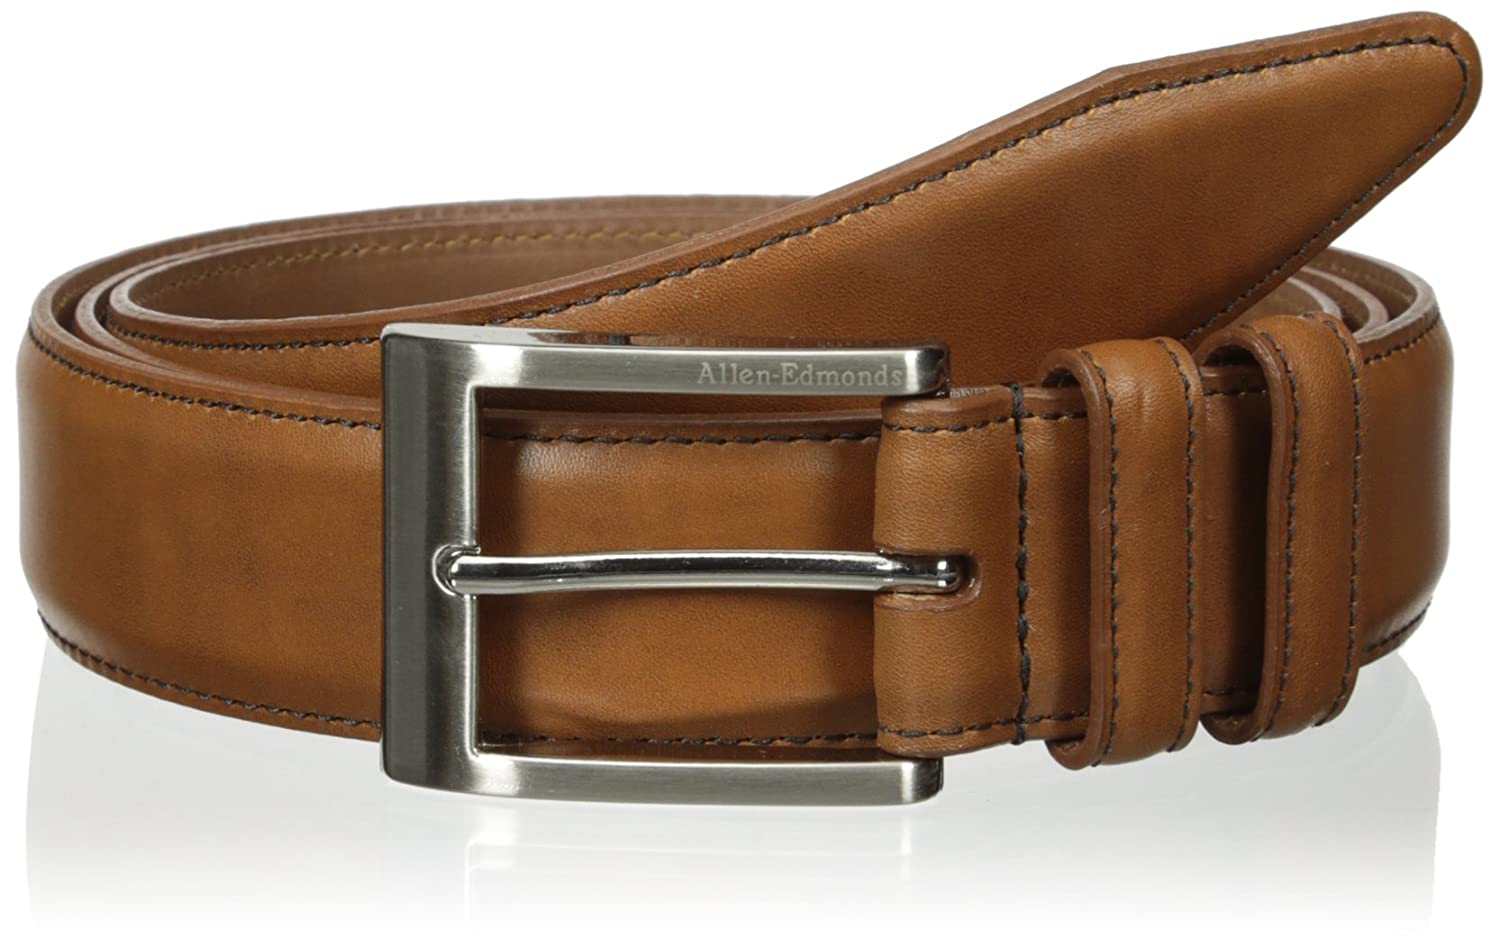 Allen edmonds men s basic 35mm dress belt at amazon men s clothing